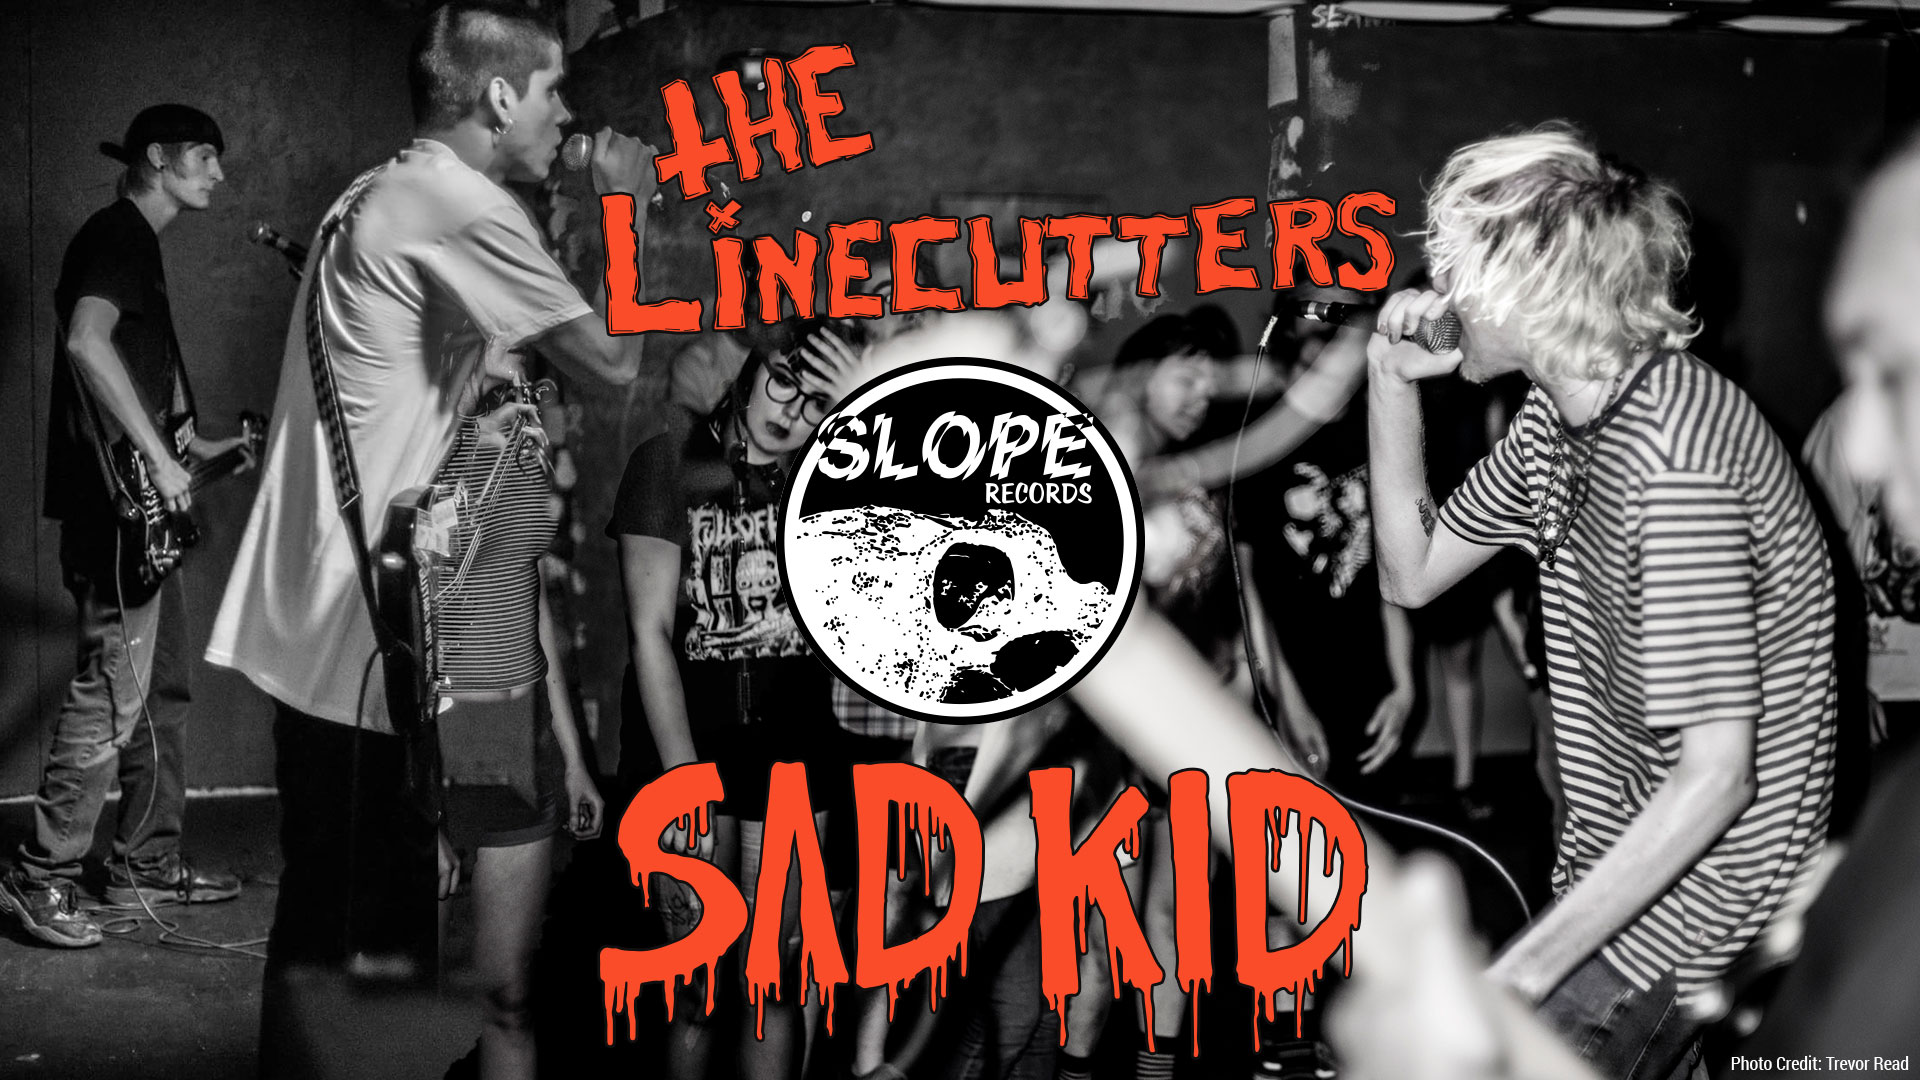 Slope Records Signs AZ's The Linecutters and Sad Kid